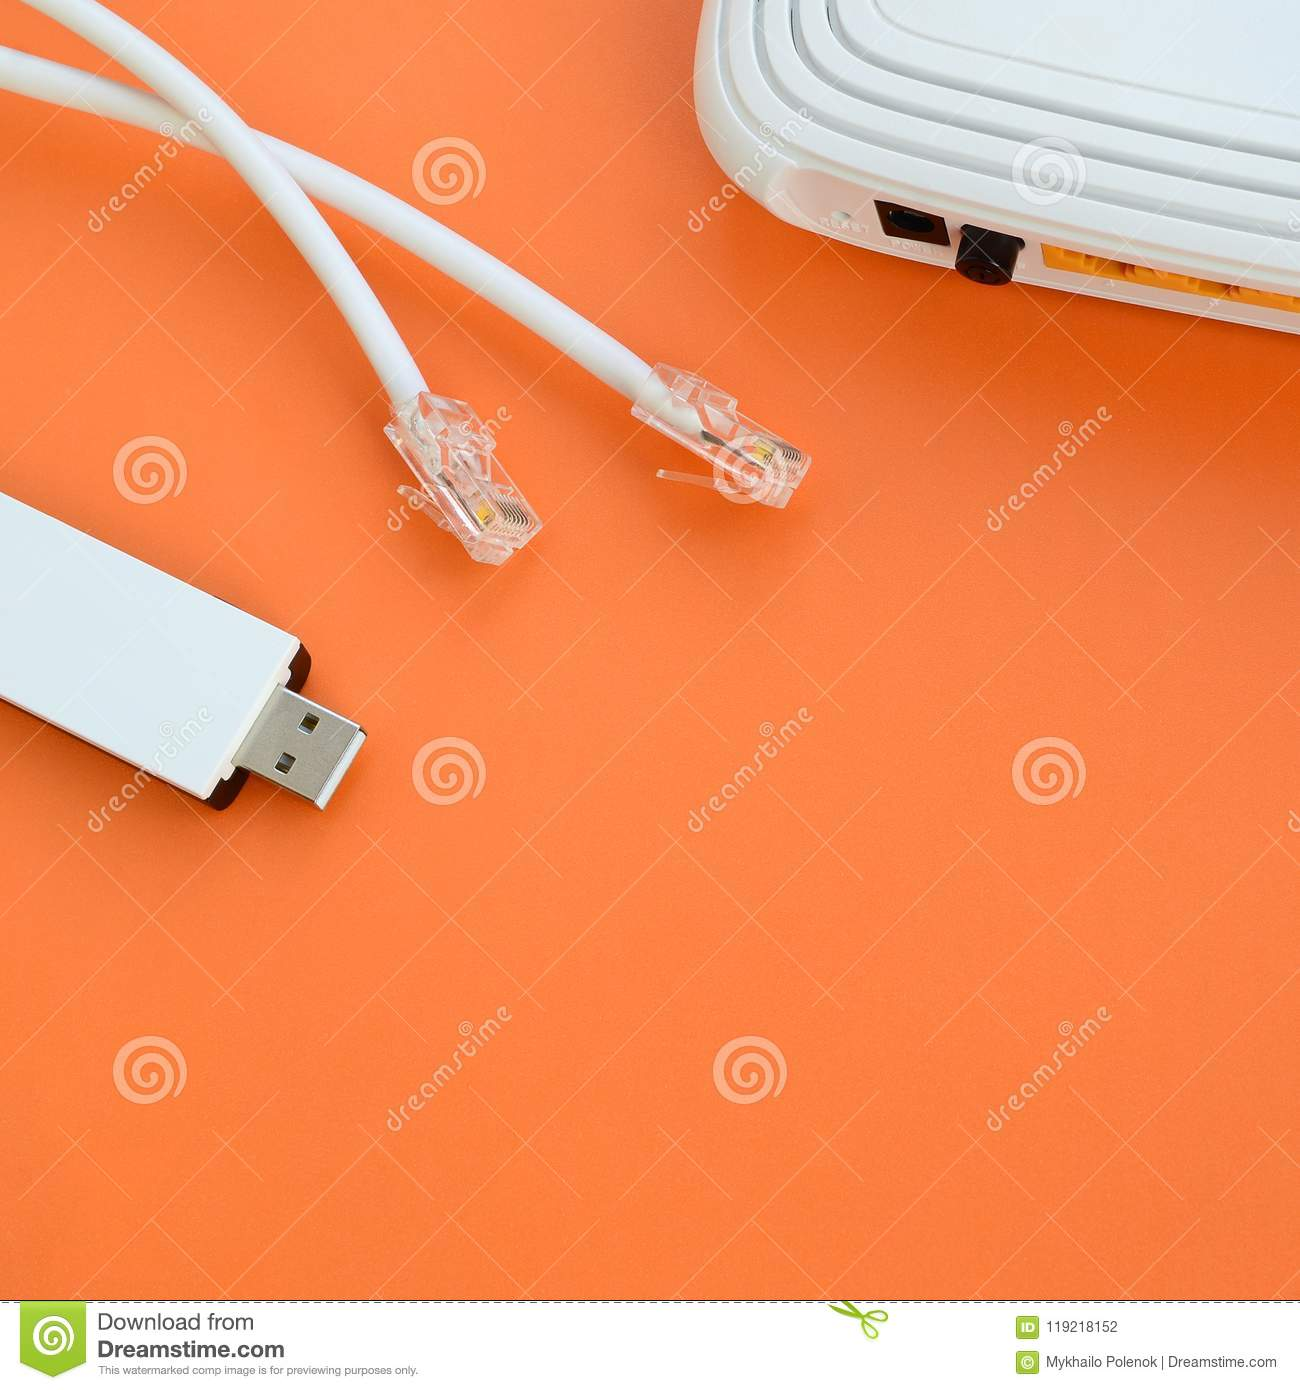 Internet Router Portable Usb Wi Fi Adapter And Cable P Home Wiring Download Stock Photo